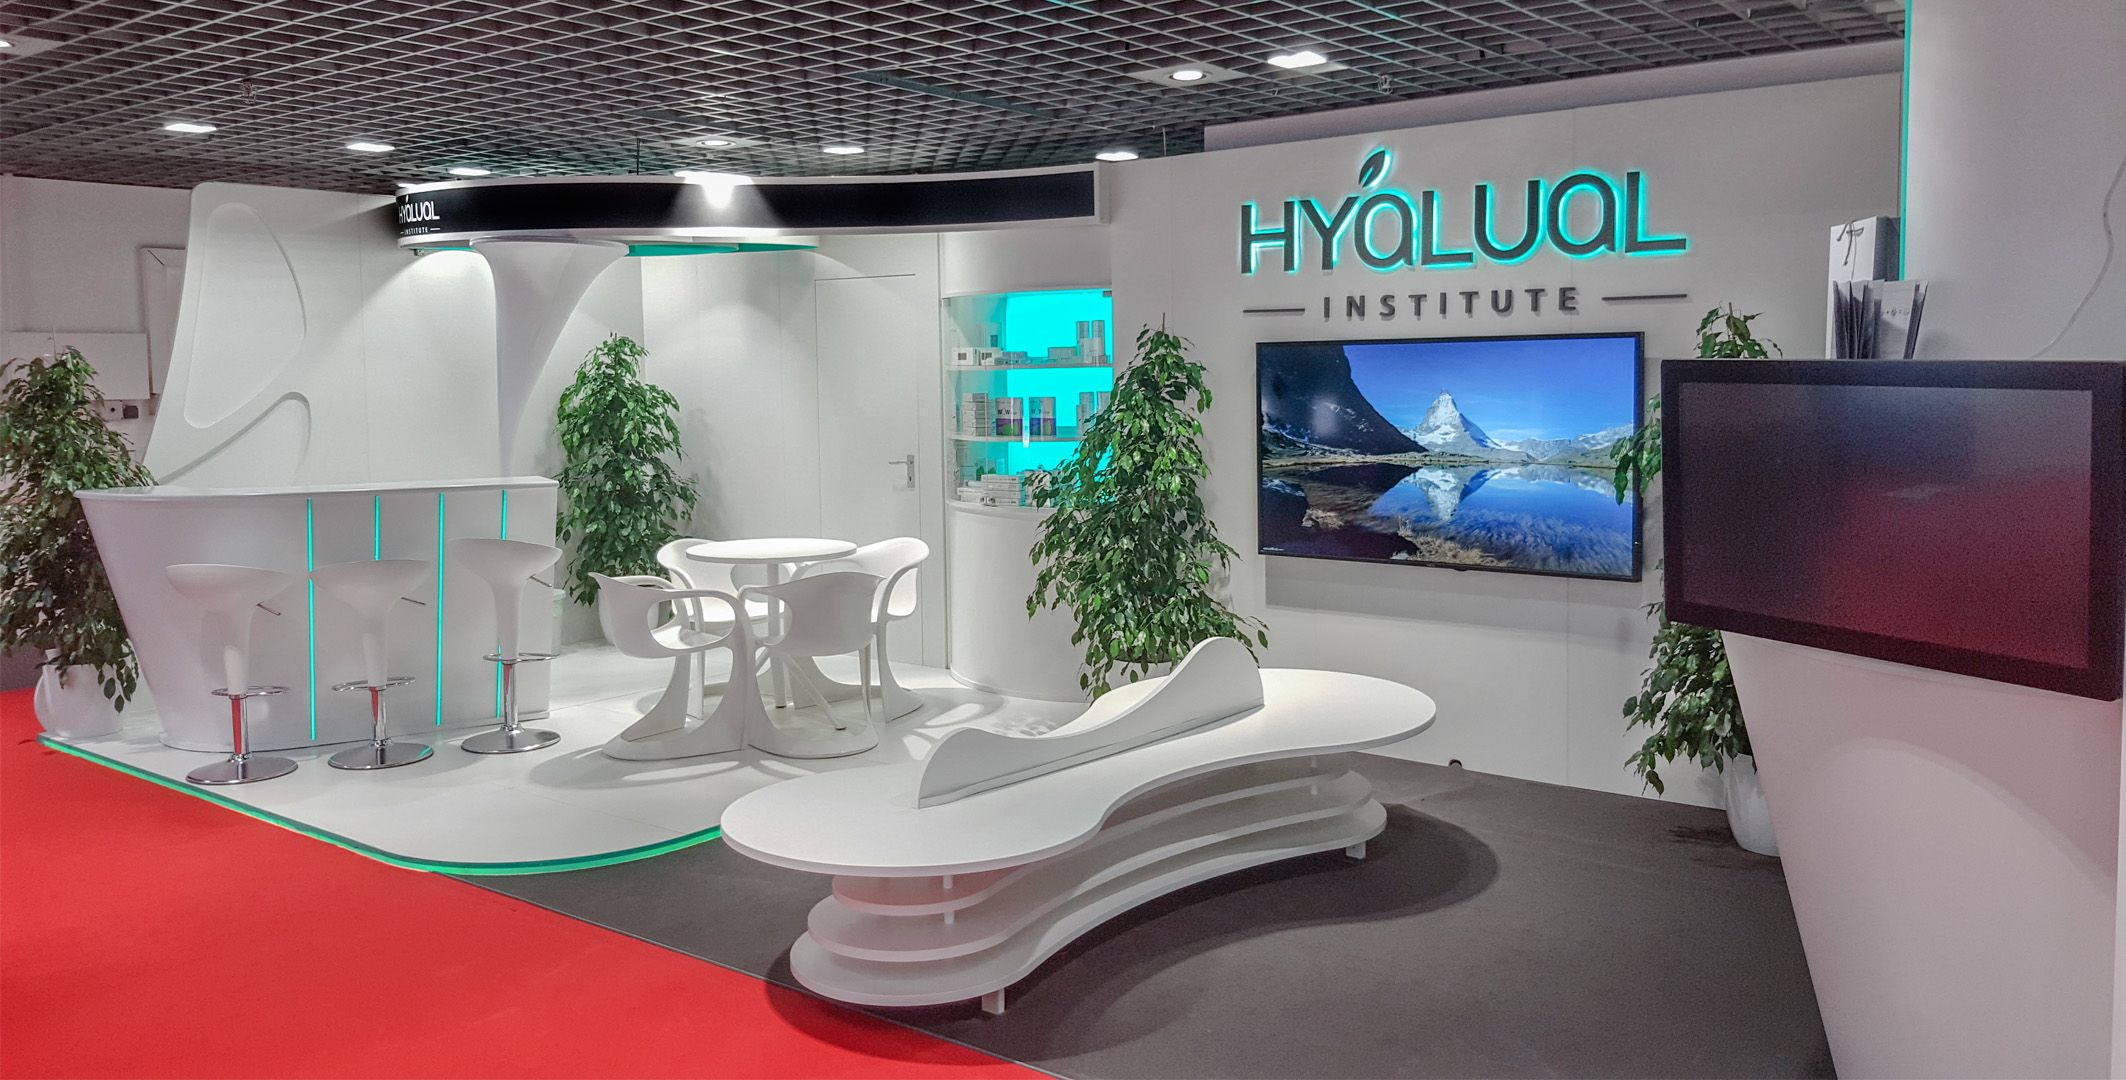 Hyalual  #hyalual #whitestand #azurestand #standdesign #exhibitionstand #exhibitionbooth #customstand #customstands #custommadestand #tailoredstand